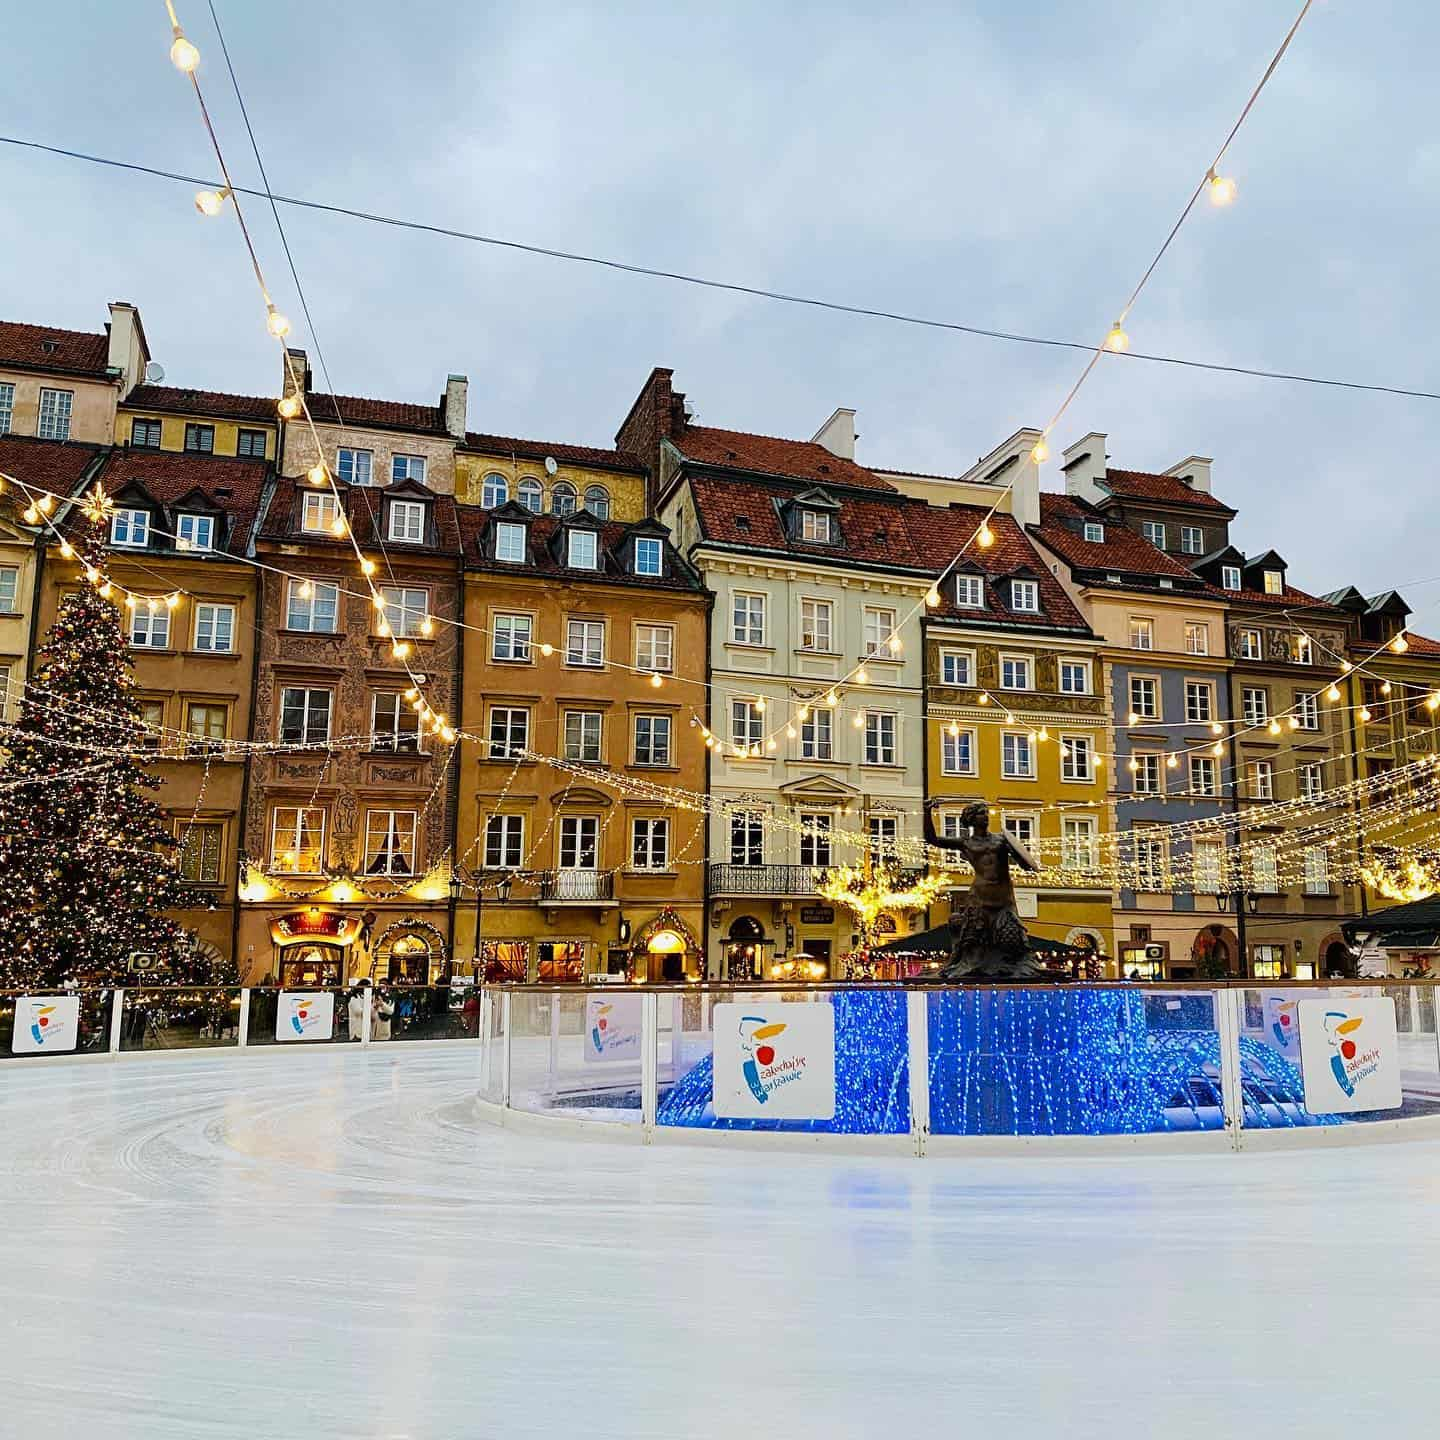 Ice skating rink surrounded by old buildings with fairy lights hanging over the ice skating rink